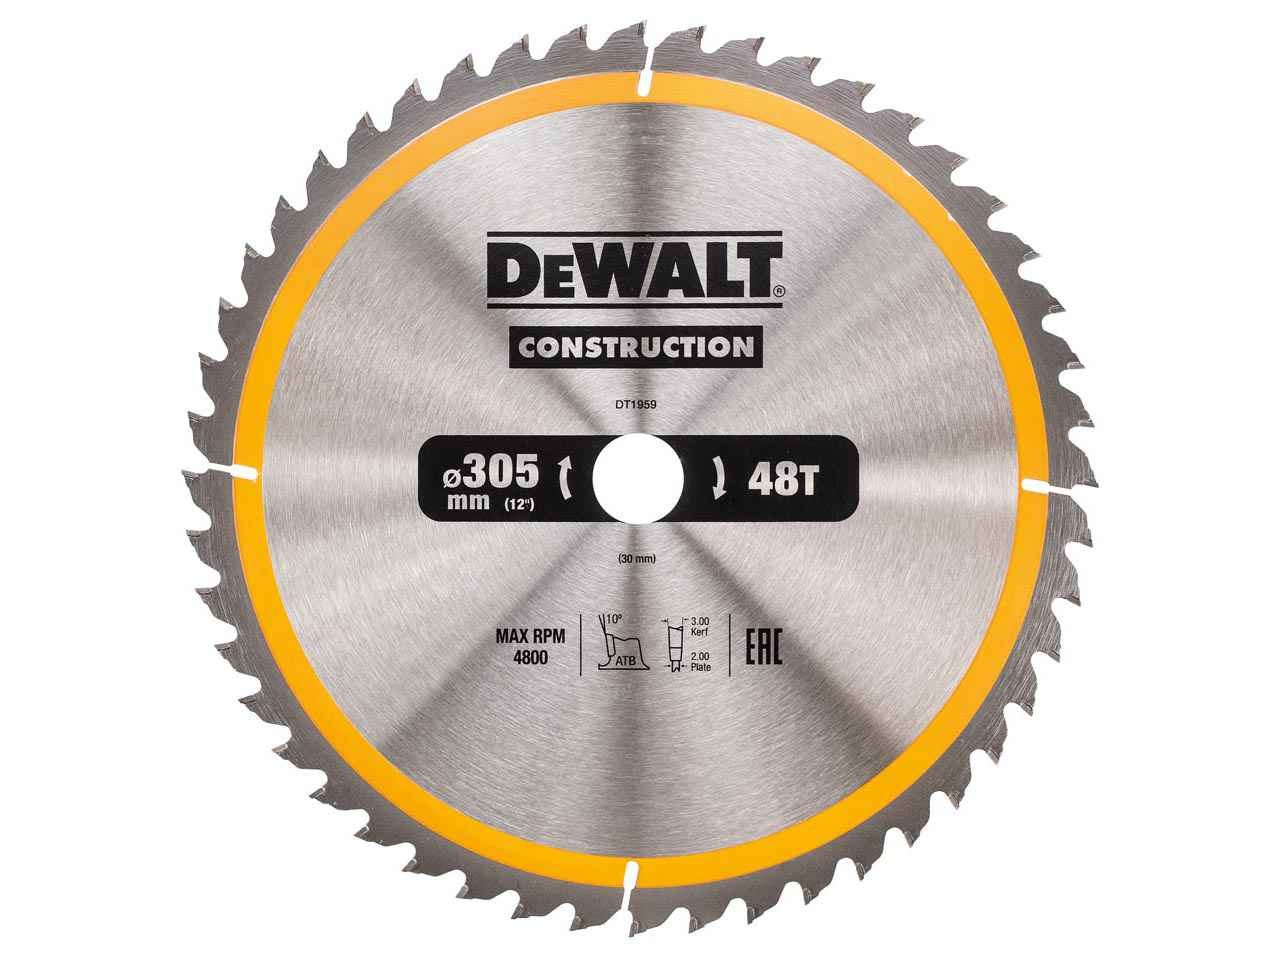 Dewalt dt1959qz construction circular saw blade 305x30mm 48t keyboard keysfo Images